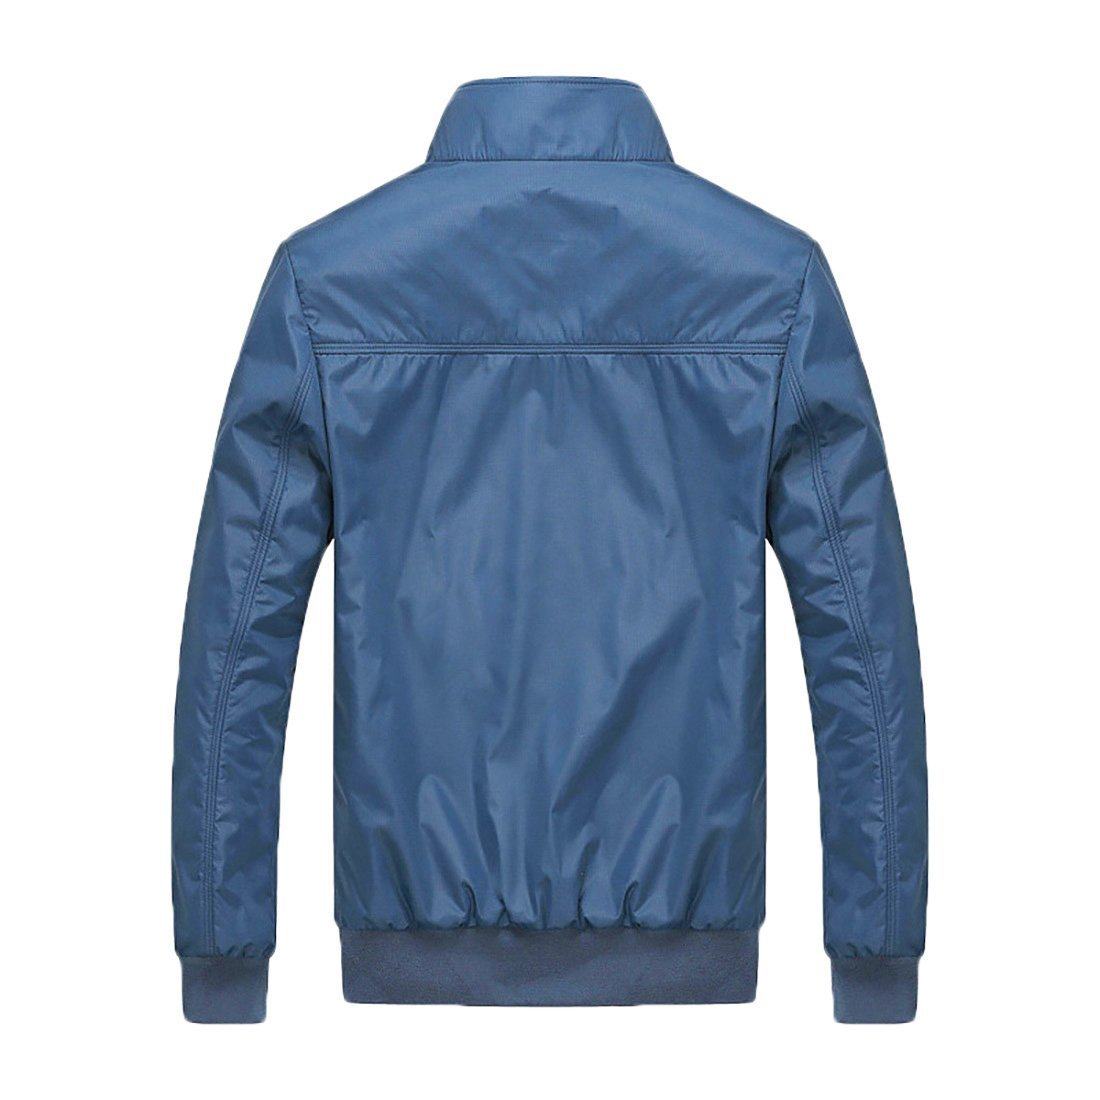 In-fashion style Mens Casual Lightweight Jacket Sportswear Outdoor Bomber Coats